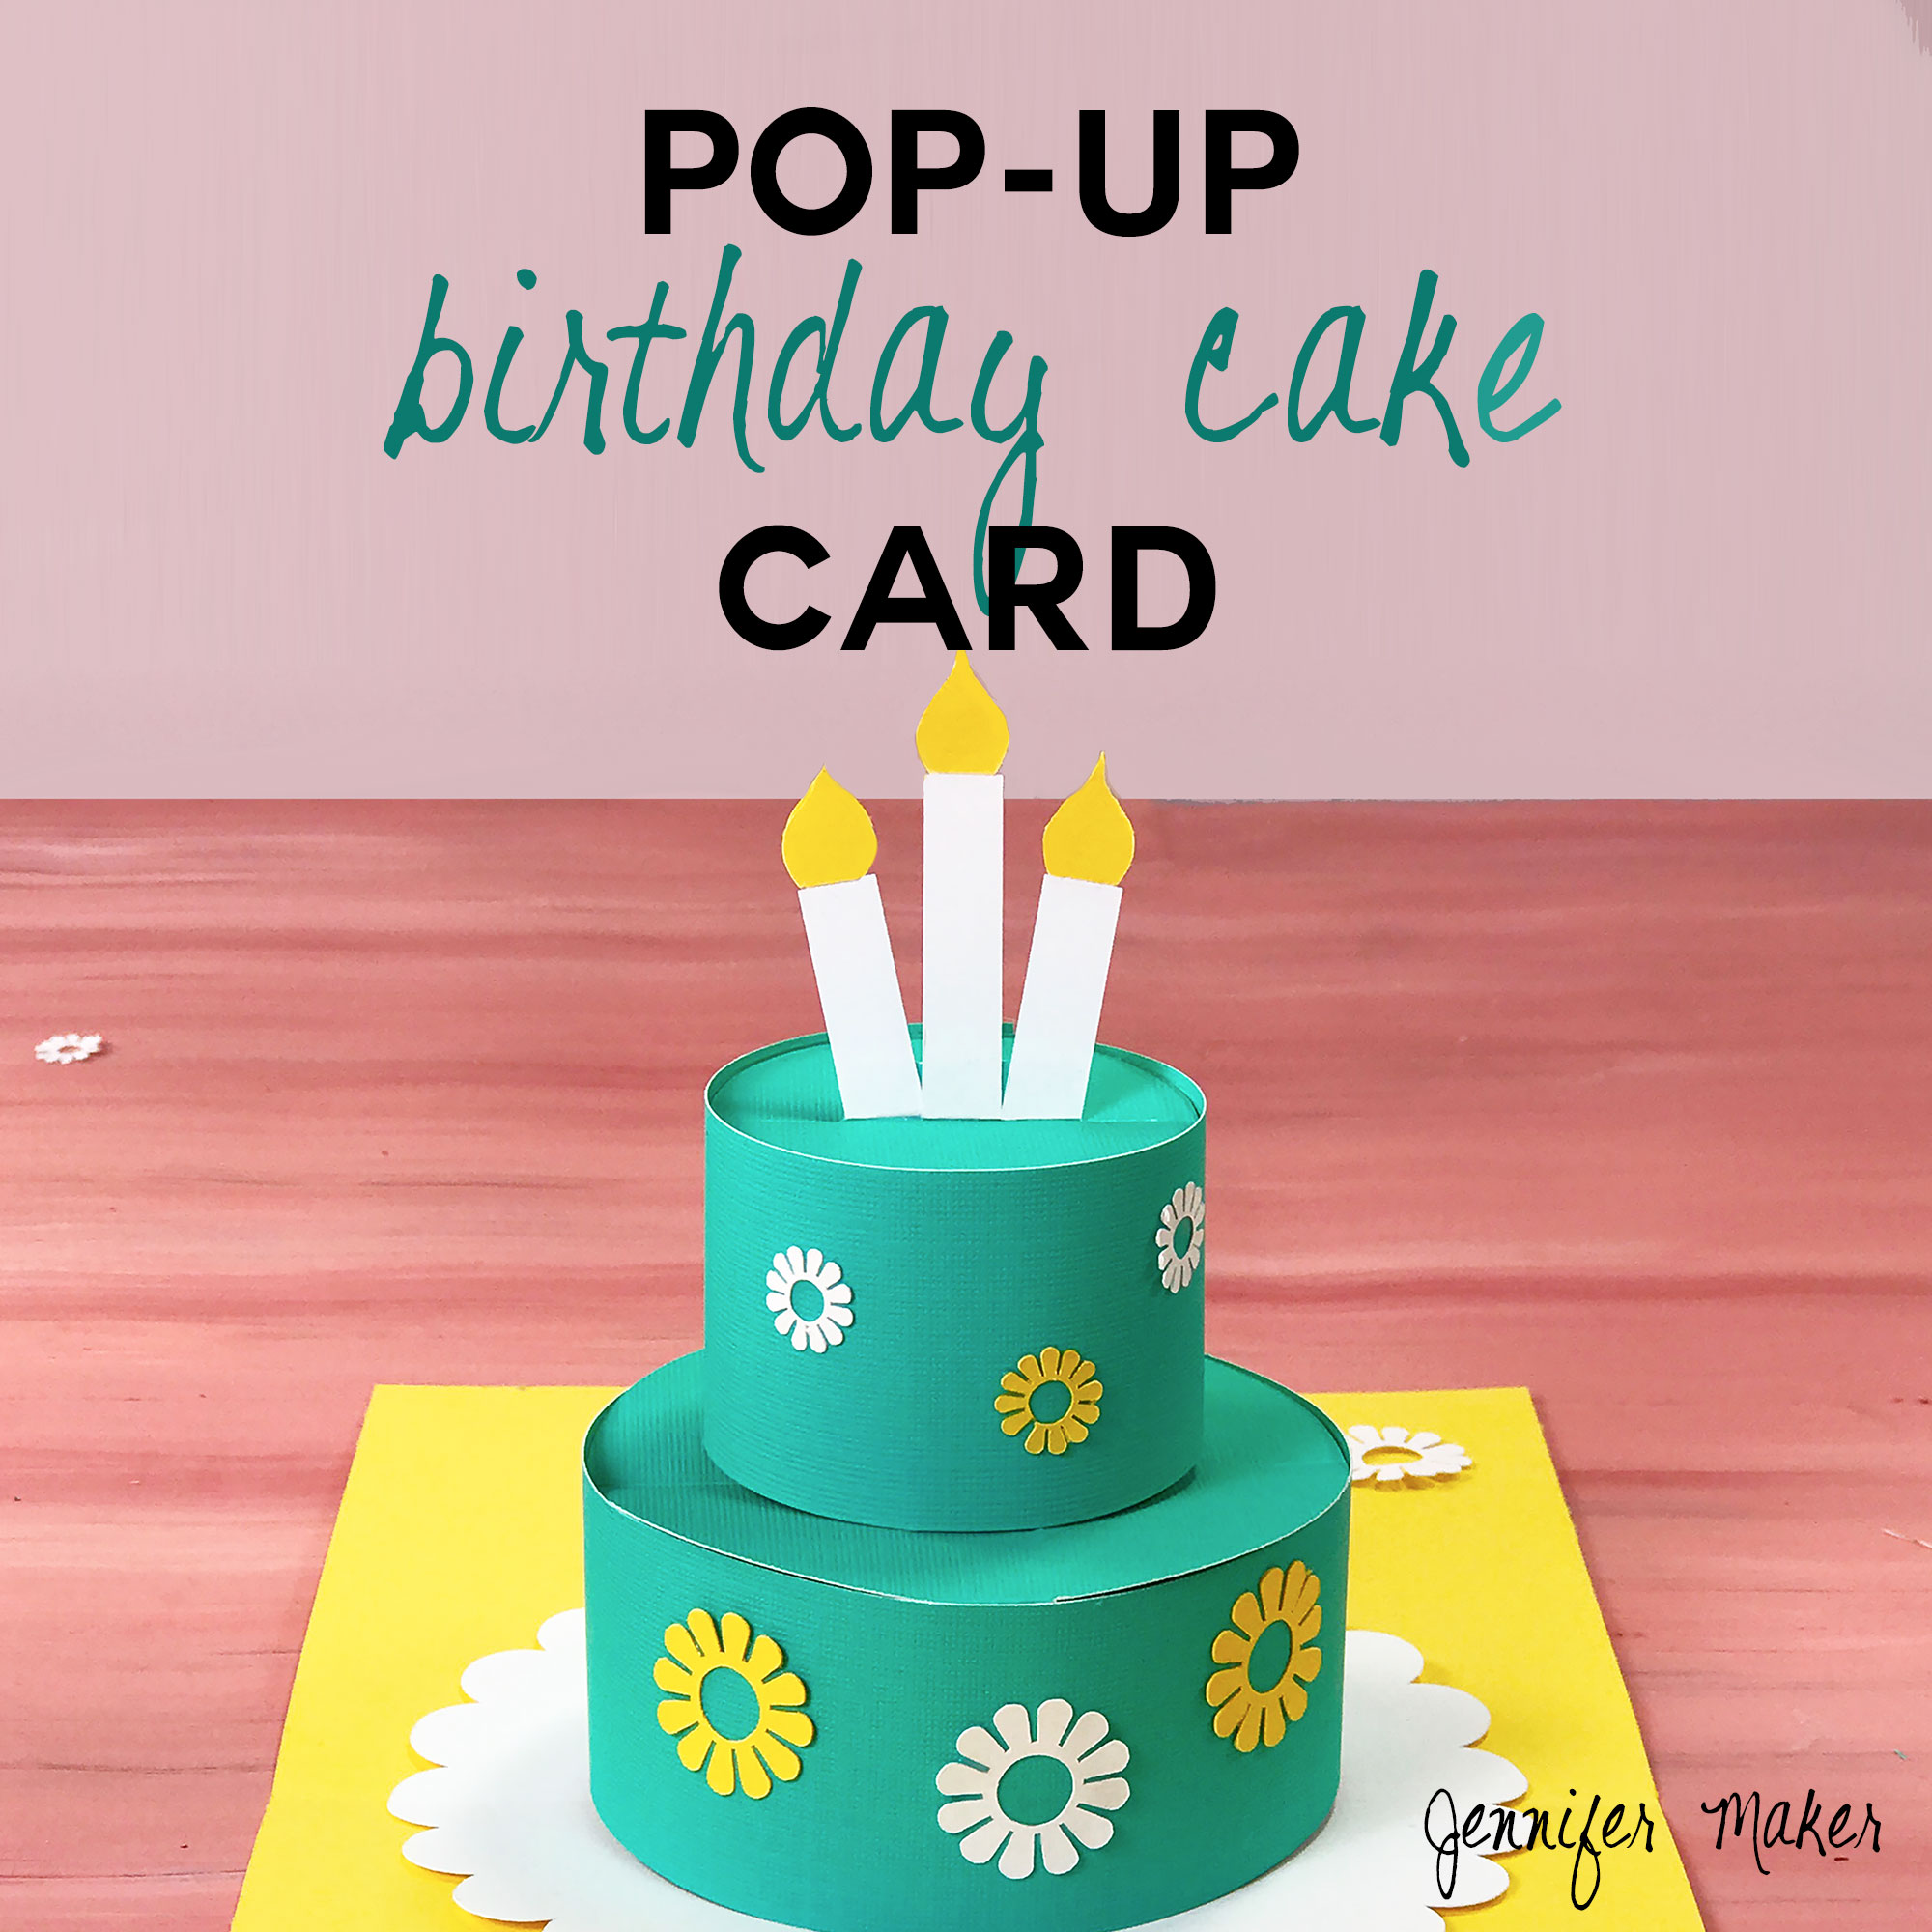 How to make a pop up birthday cake card jennifer maker how to make a pop up birthday cake card bookmarktalkfo Choice Image